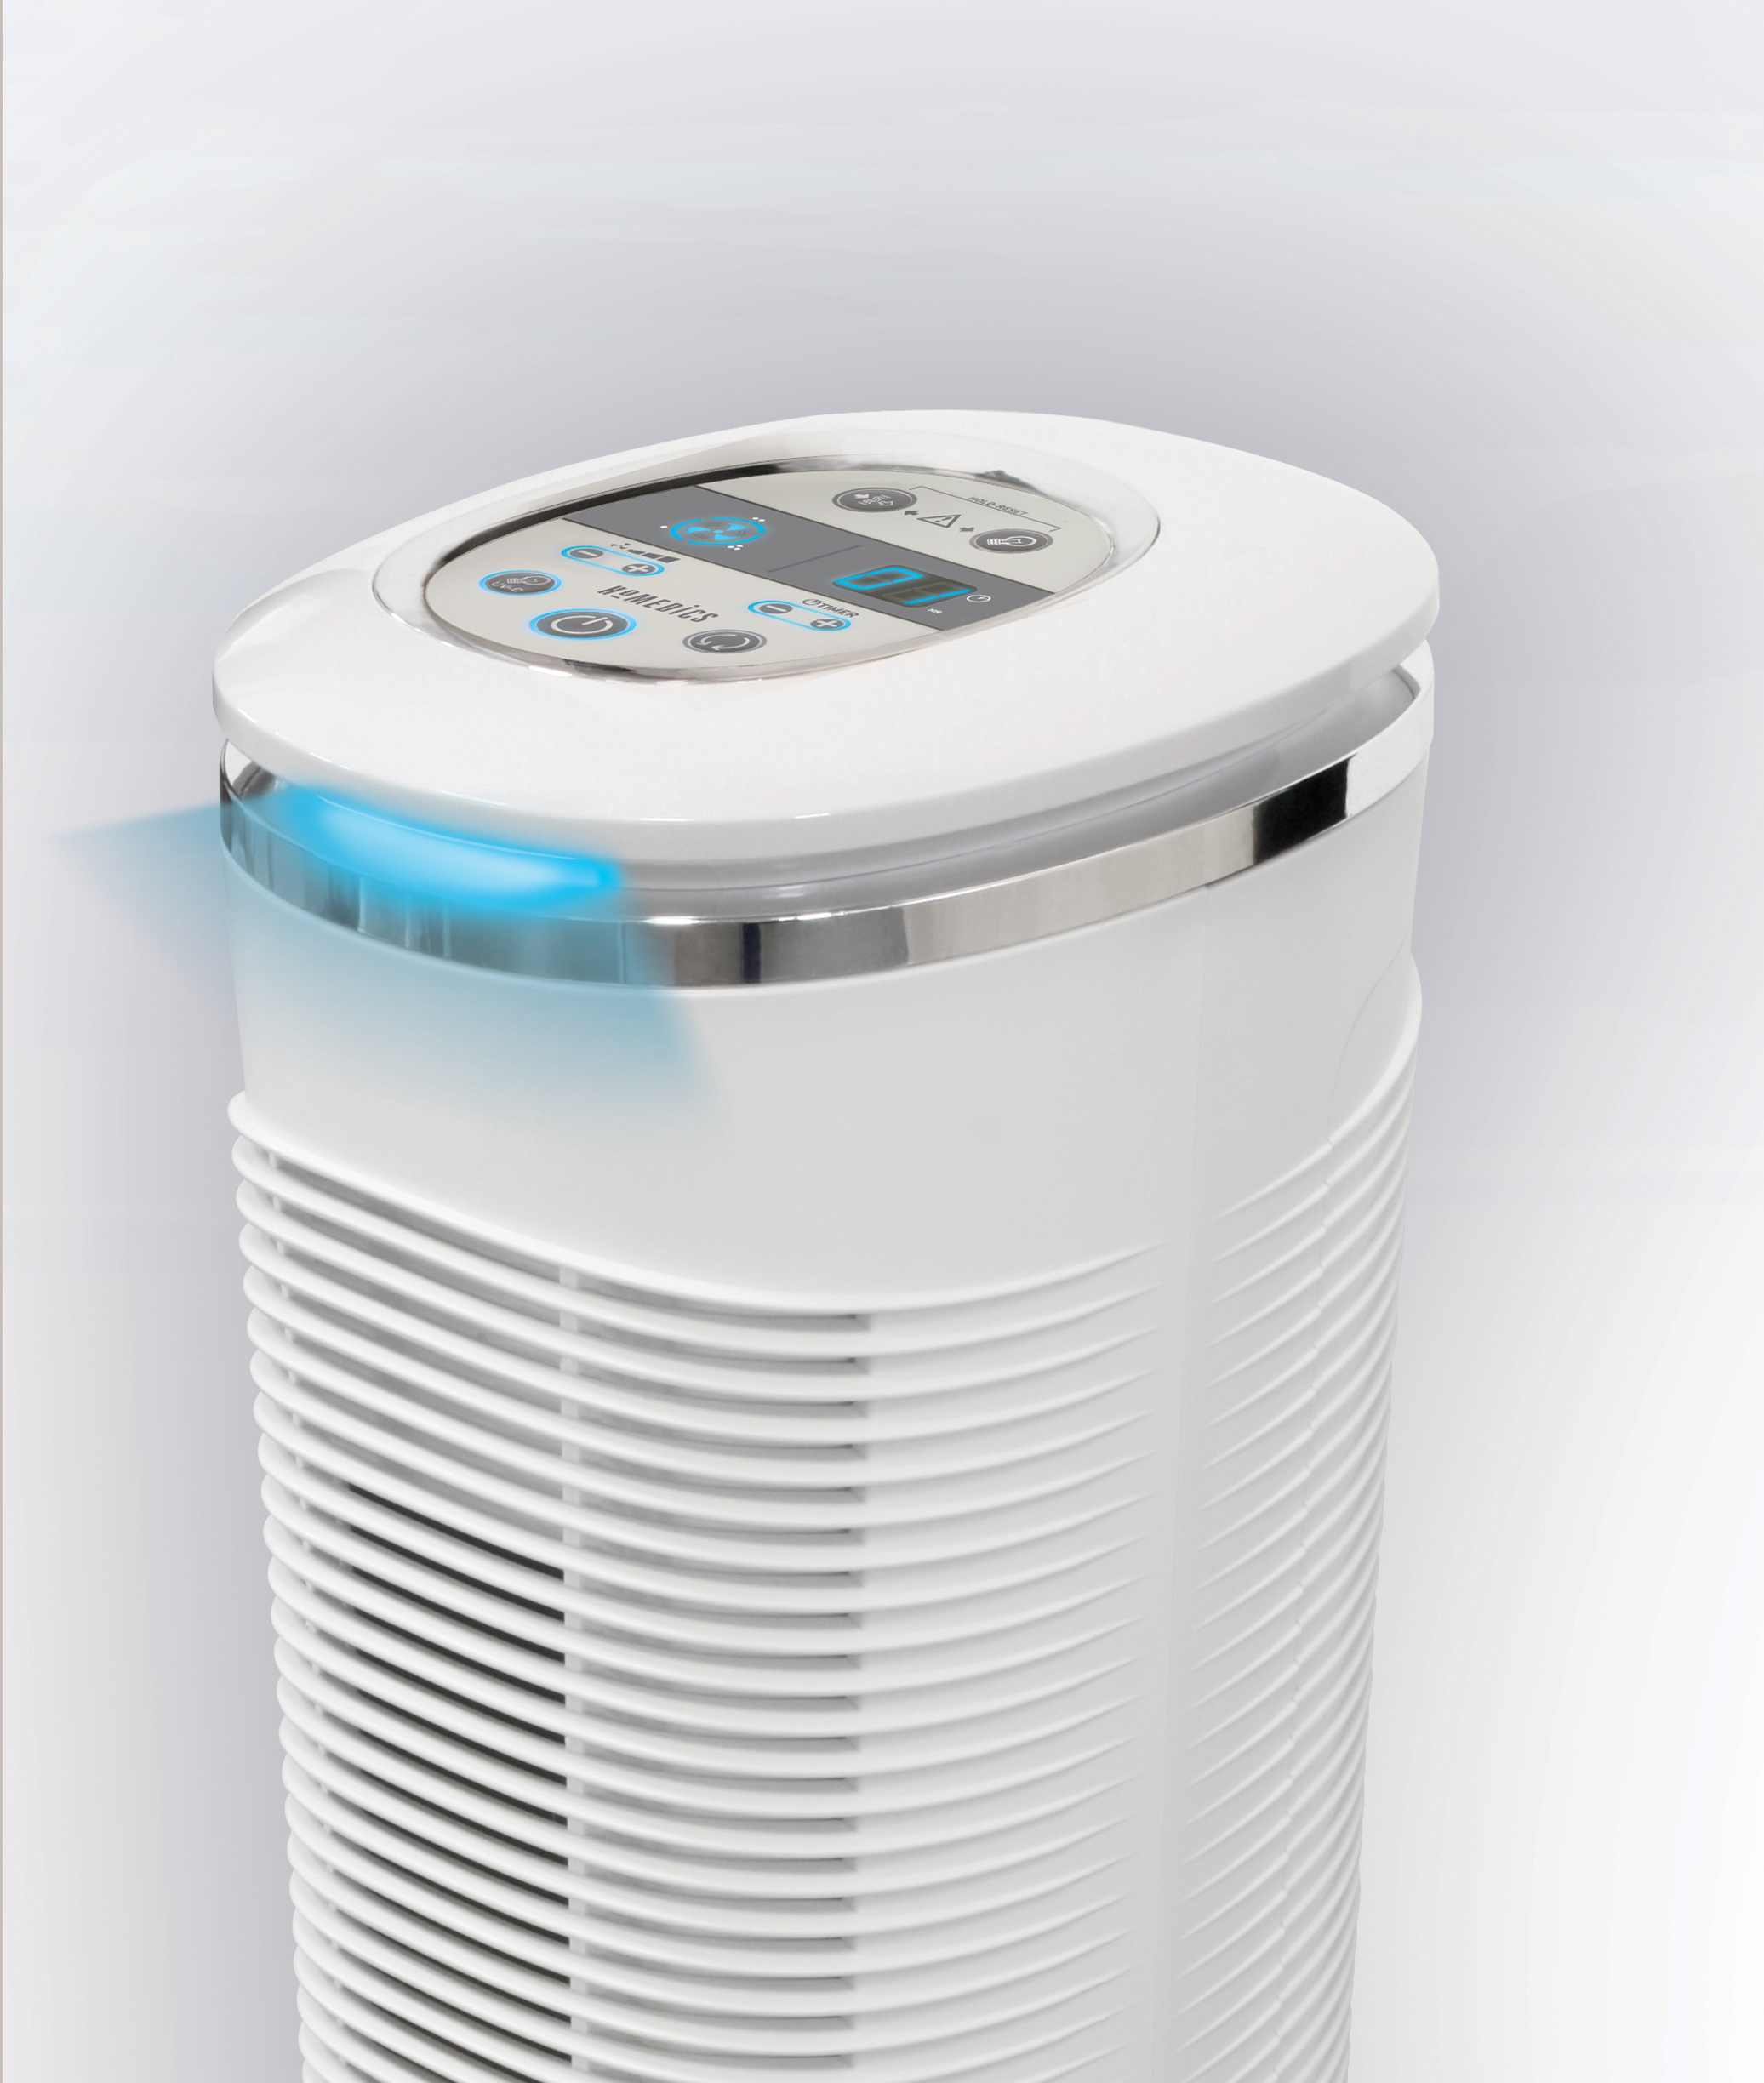 HoMedics AR 29 GB Hepa Air PurifierTower eBay #1A8CB1